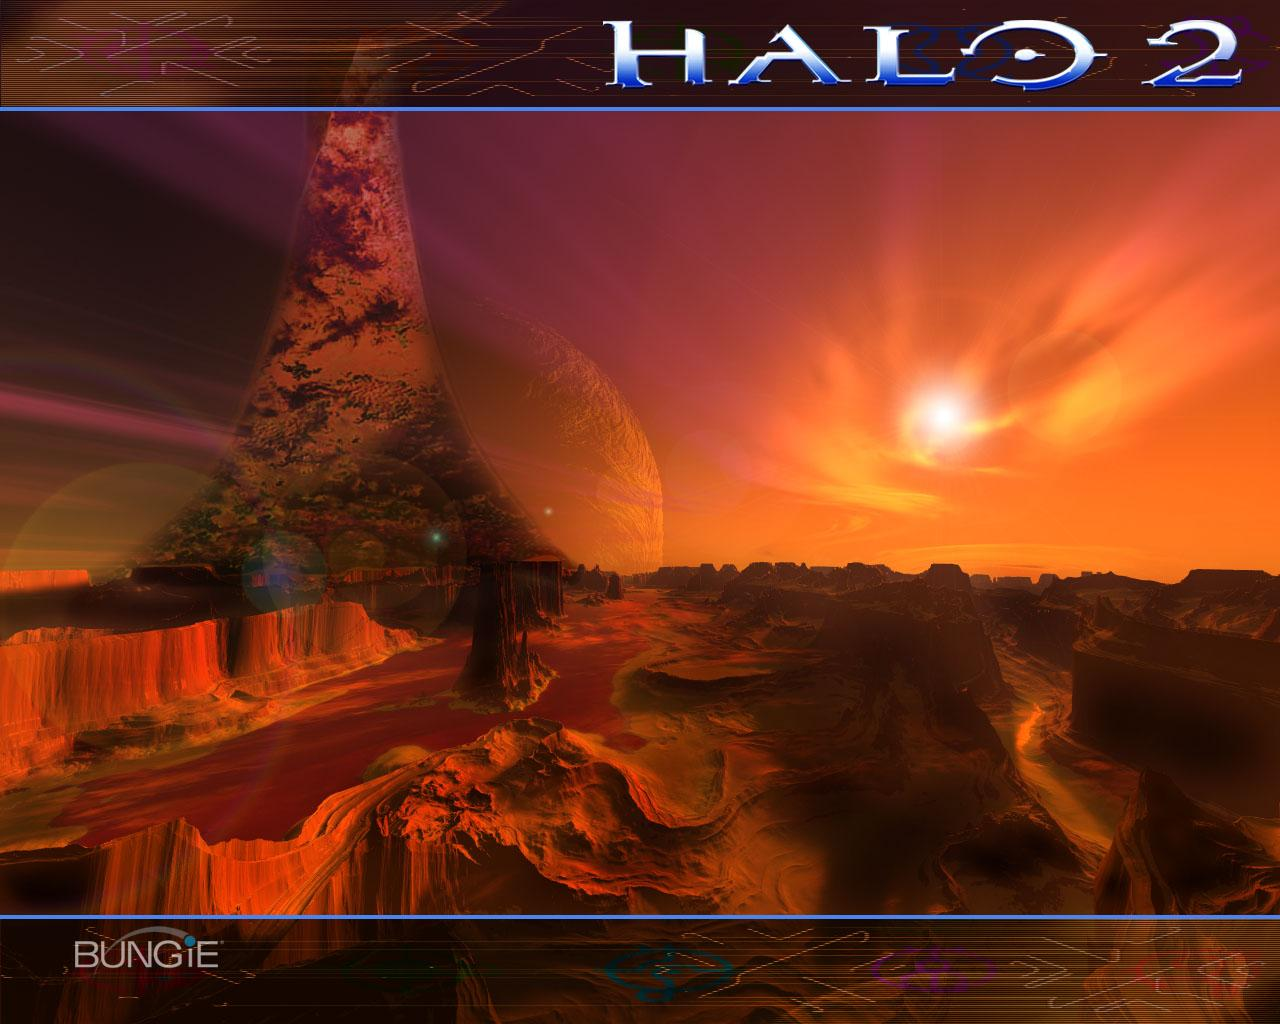 Halo 2 Wallpapers for Iphone